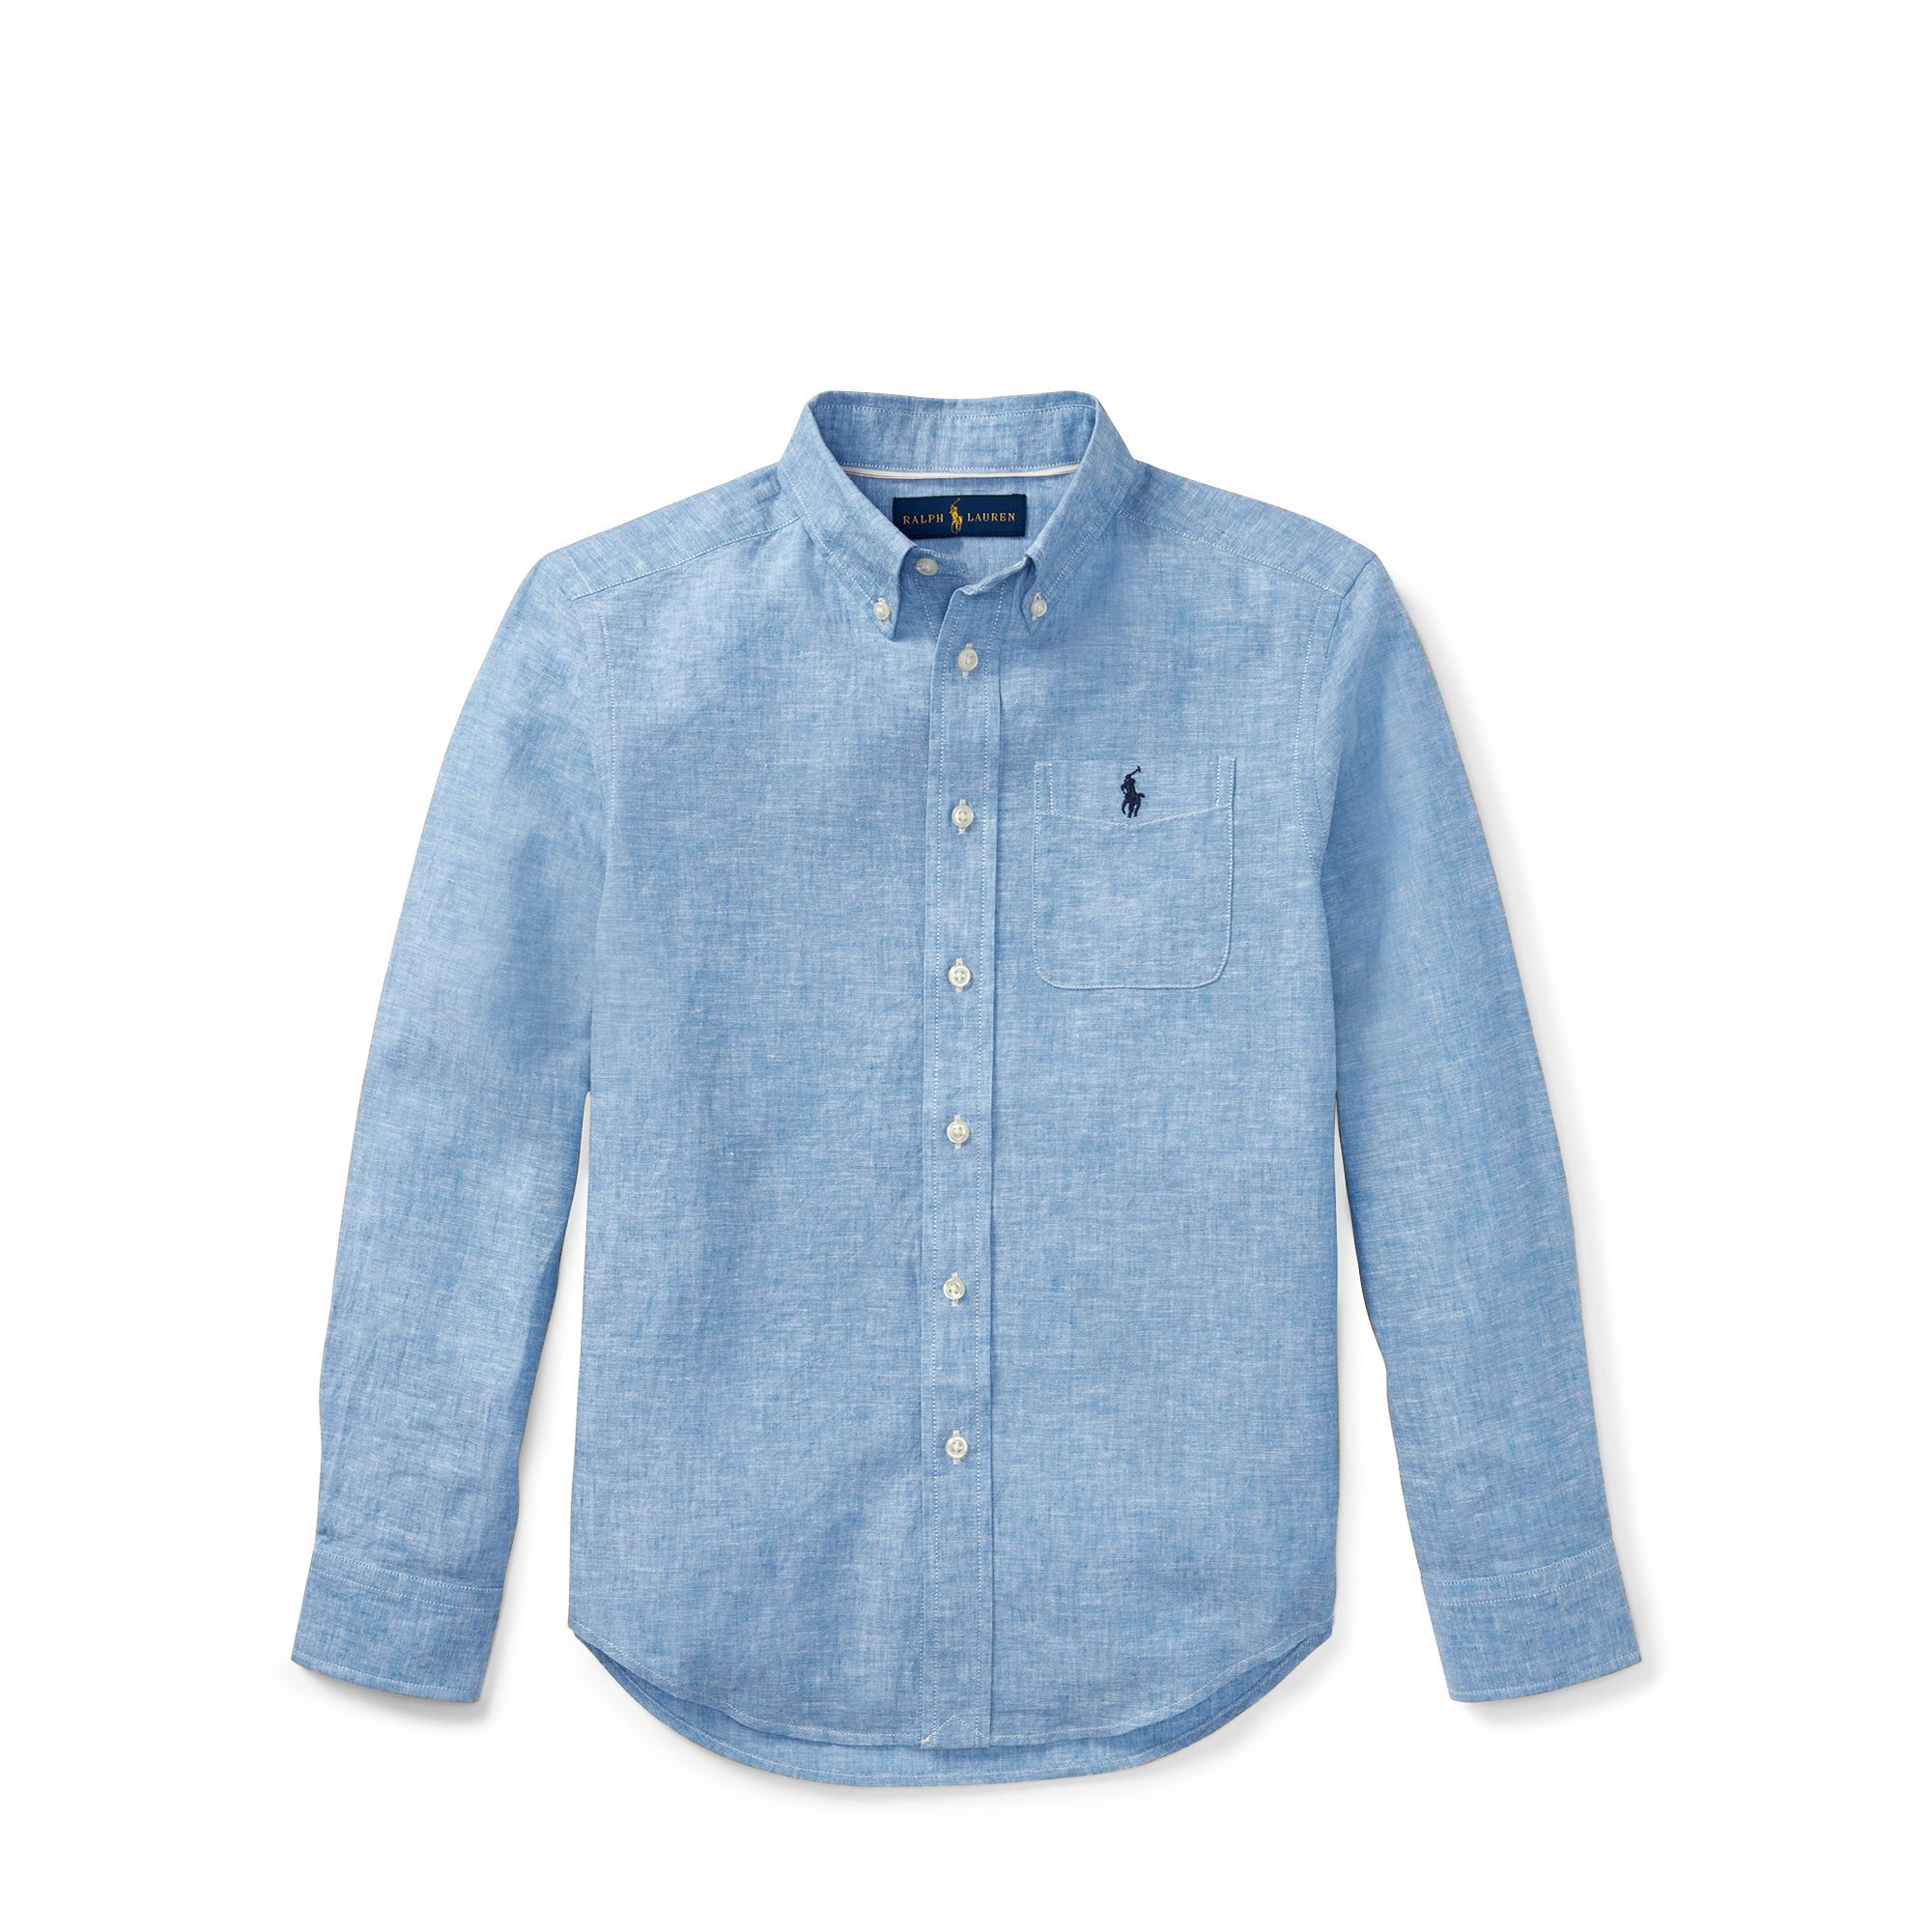 Linen-Cotton-Chambray Shirt - Shirts Boys 6-14 Years - Ralph Lauren